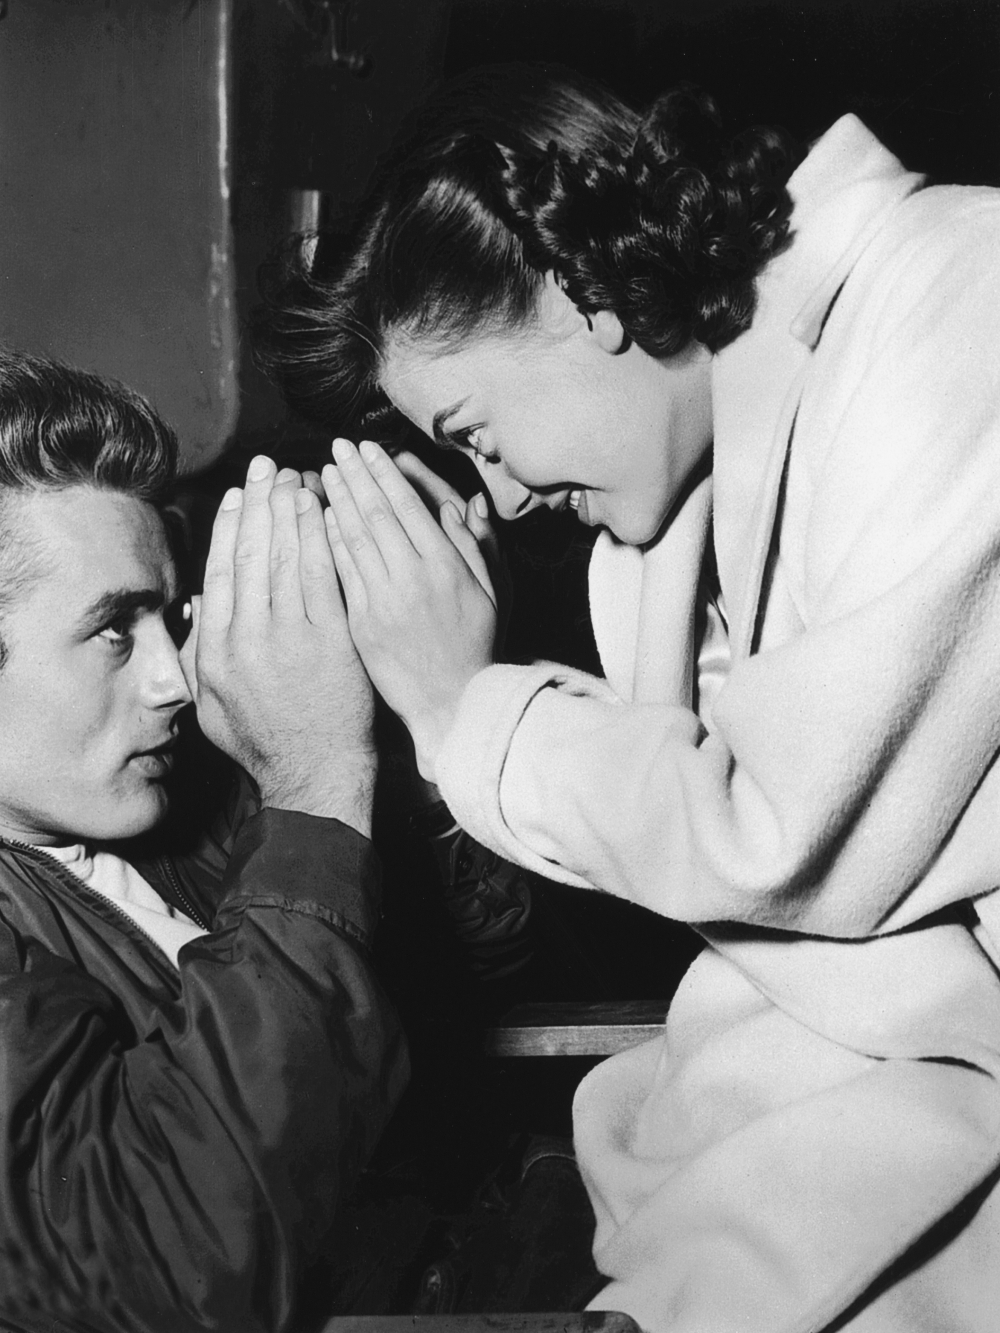 the character and role of james dean in the movie rebel without a cause Rebel without a cause associates  james dean contributes a lot to the success of  red colour associates communism or rebellions' in rebel.